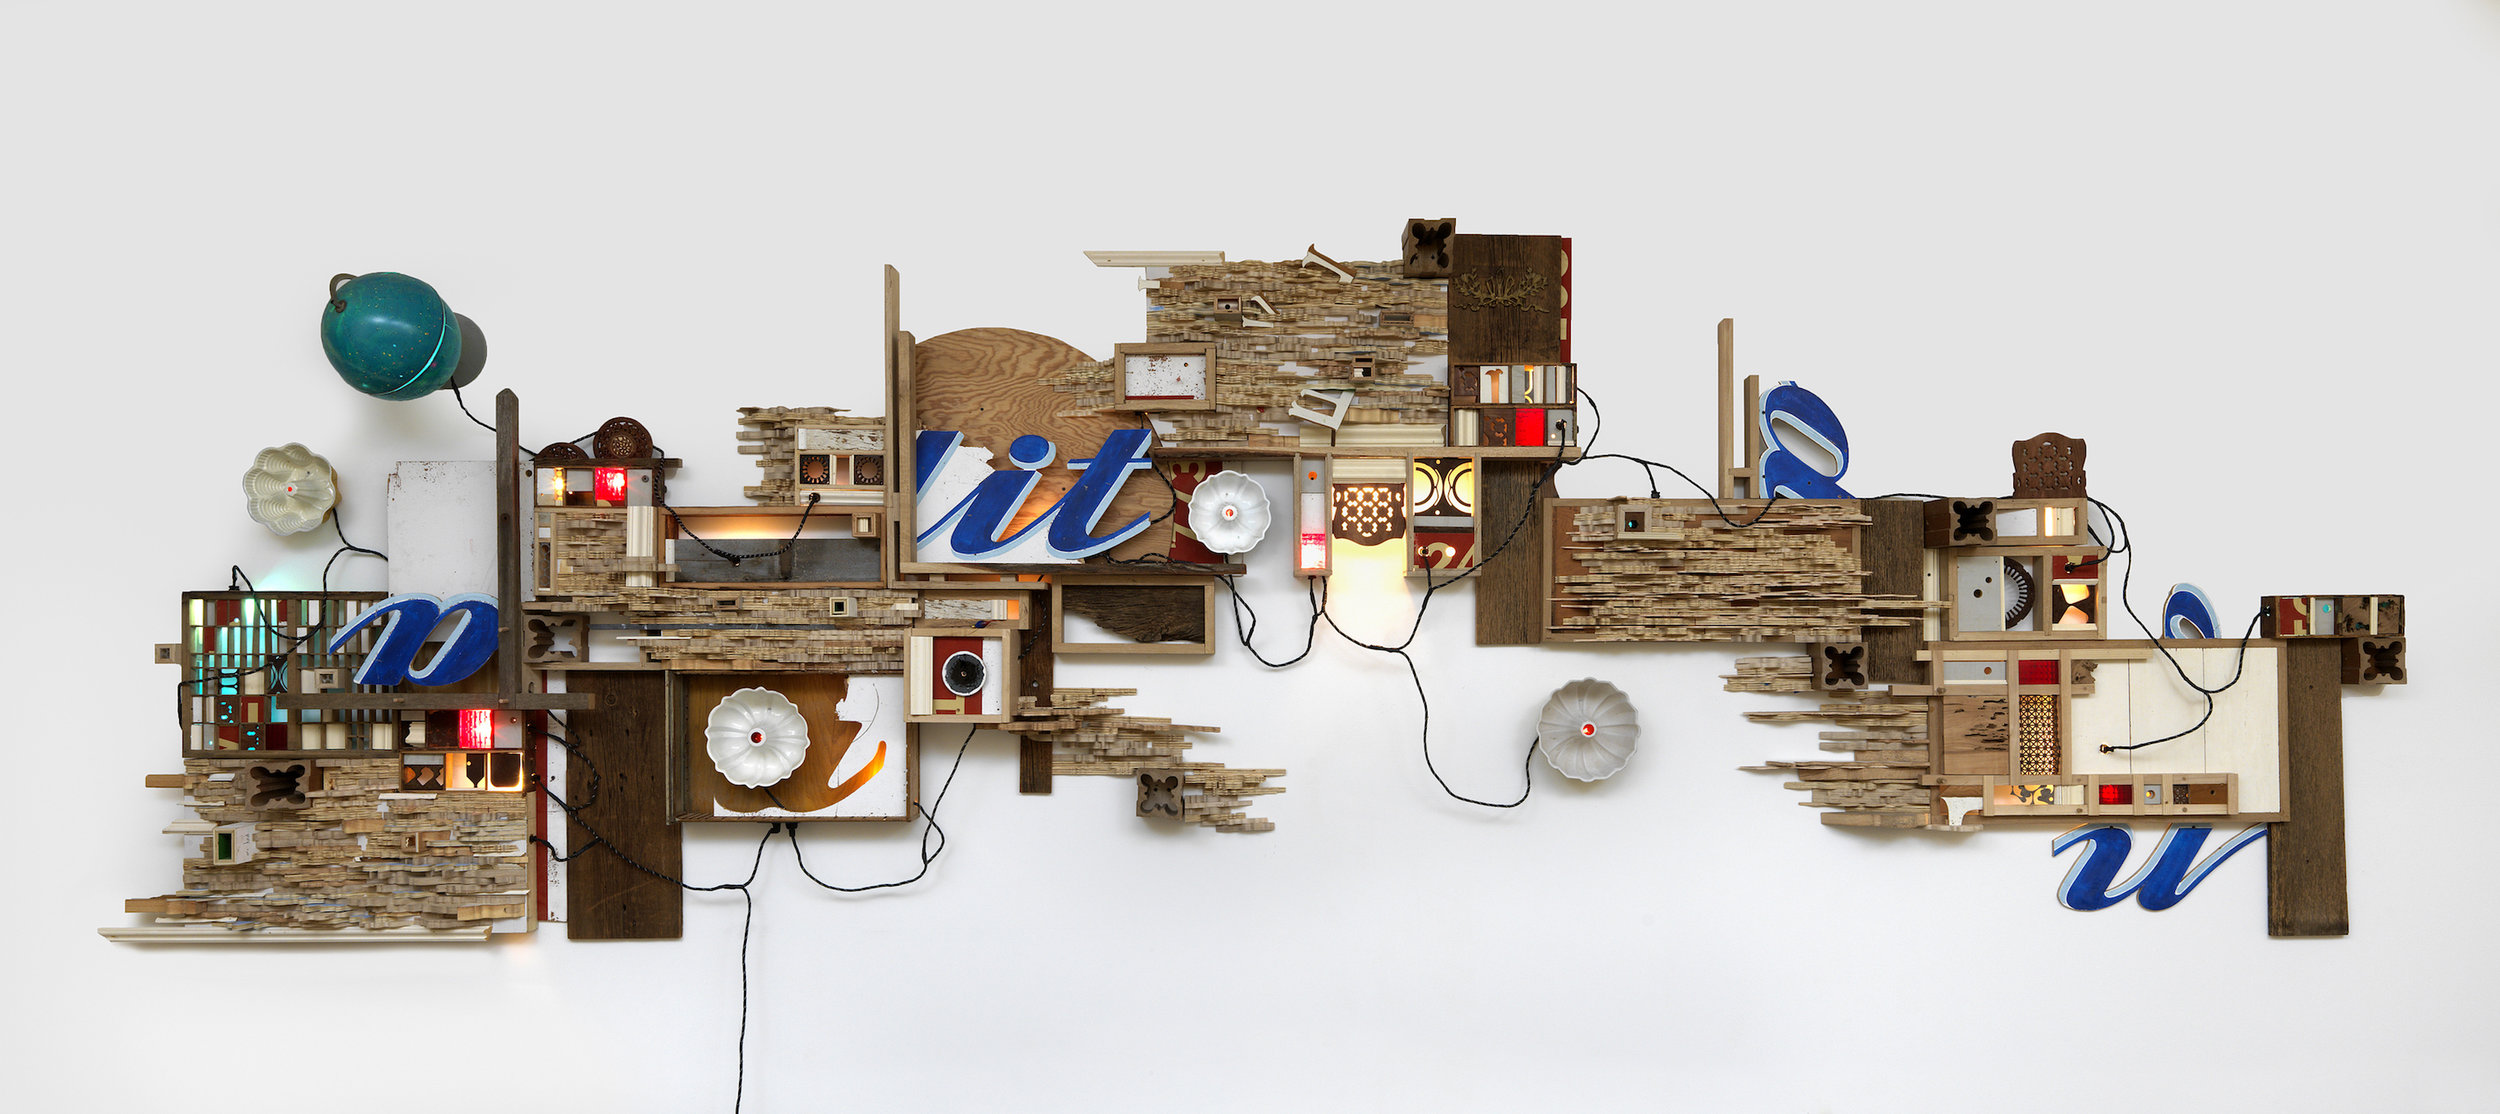 "Above: Juan Angel Chavez,  DRIP FALLS , 2012, mixed media assemblage, 20 ft W x 6 ft x 12 in D. Below: Juan Angel Chavez,          0     0     1     9     53     MSU-Mankato     1     1     61     14.0               96                Normal     0                     false     false     false         EN-US     JA     X-NONE                                                                                                                                                                                                                                                                                                                                                                                                                                                                                                                                                                                                                                                                                                             /* Style Definitions */ table.MsoNormalTable 	{mso-style-name:""Table Normal""; 	mso-tstyle-rowband-size:0; 	mso-tstyle-colband-size:0; 	mso-style-noshow:yes; 	mso-style-priority:99; 	mso-style-parent:""""; 	mso-padding-alt:0in 5.4pt 0in 5.4pt; 	mso-para-margin:0in; 	mso-para-margin-bottom:.0001pt; 	mso-pagination:widow-orphan; 	font-size:12.0pt; 	font-family:Calibri; 	mso-ascii-font-family:Calibri; 	mso-ascii-theme-font:minor-latin; 	mso-hansi-font-family:Calibri; 	mso-hansi-theme-font:minor-latin;}      WOLFDOG , 2010, mixed media assemblage, 5 ft W x 5 ft H x 6 in D. Photos courtesy of the artist"